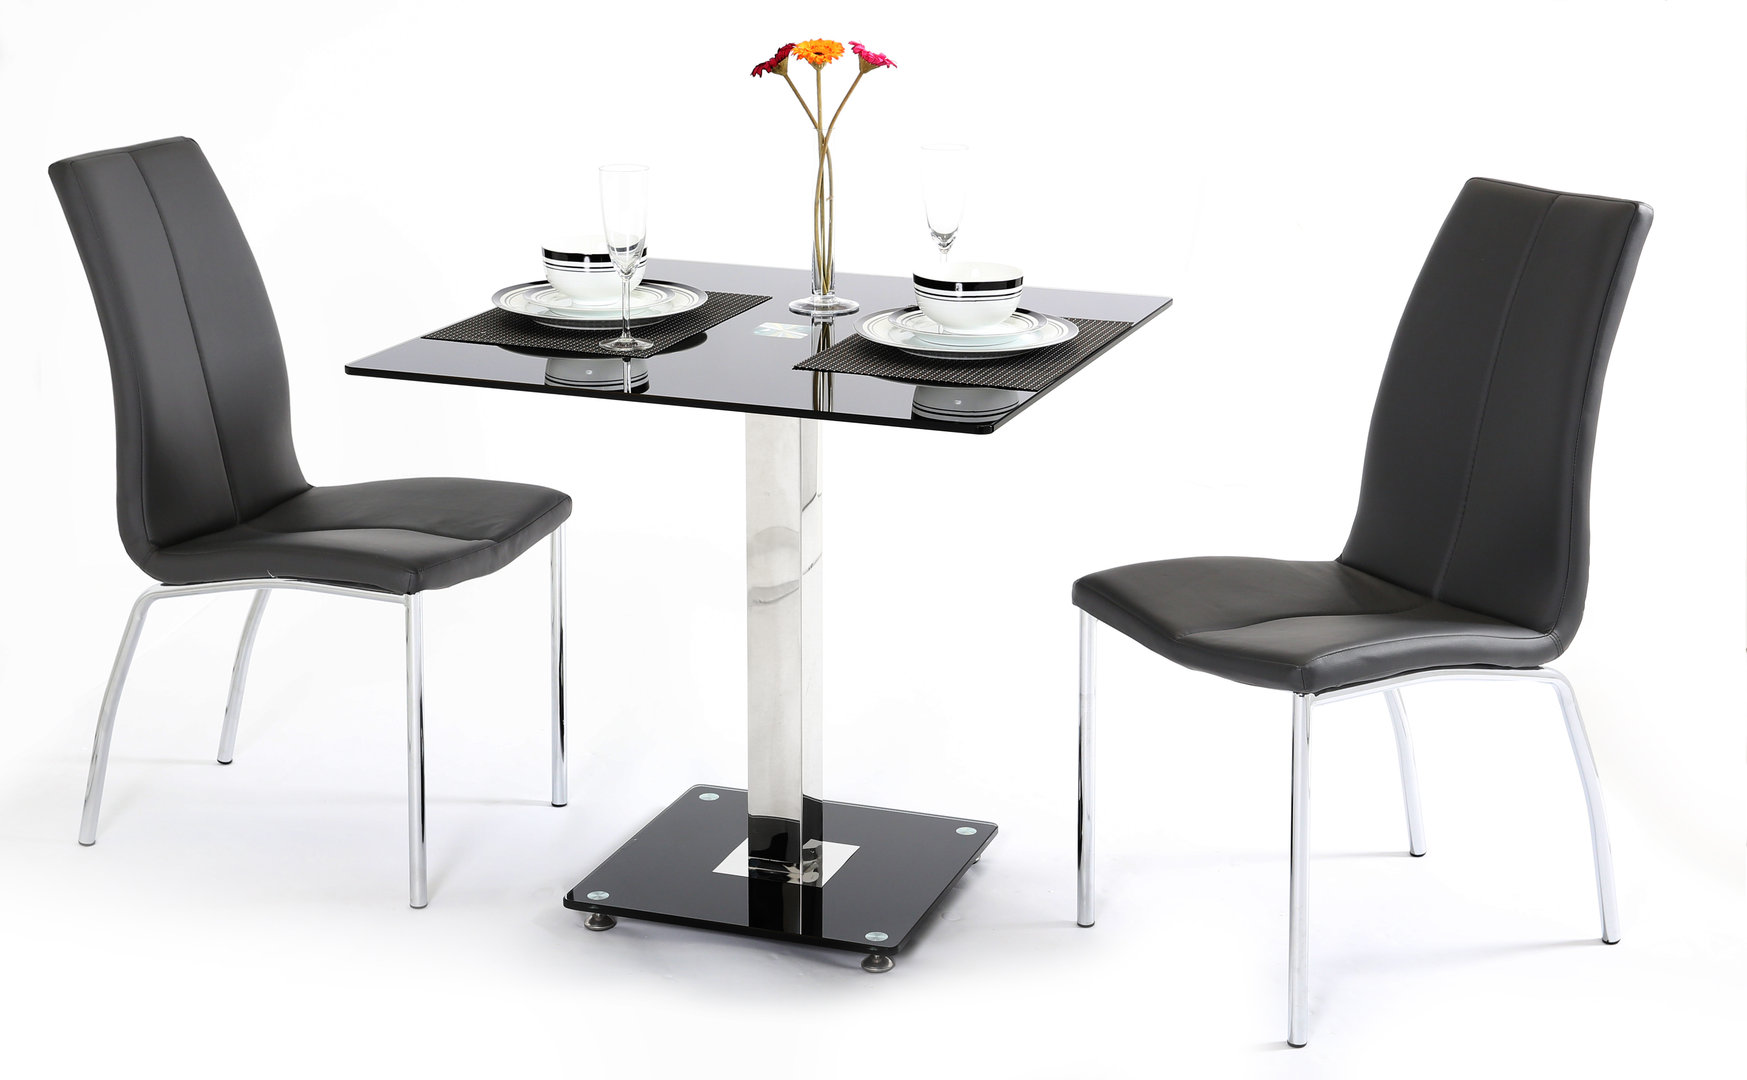 black dining table and chairs caravan infinity zero gravity chair glass 2 homegenies